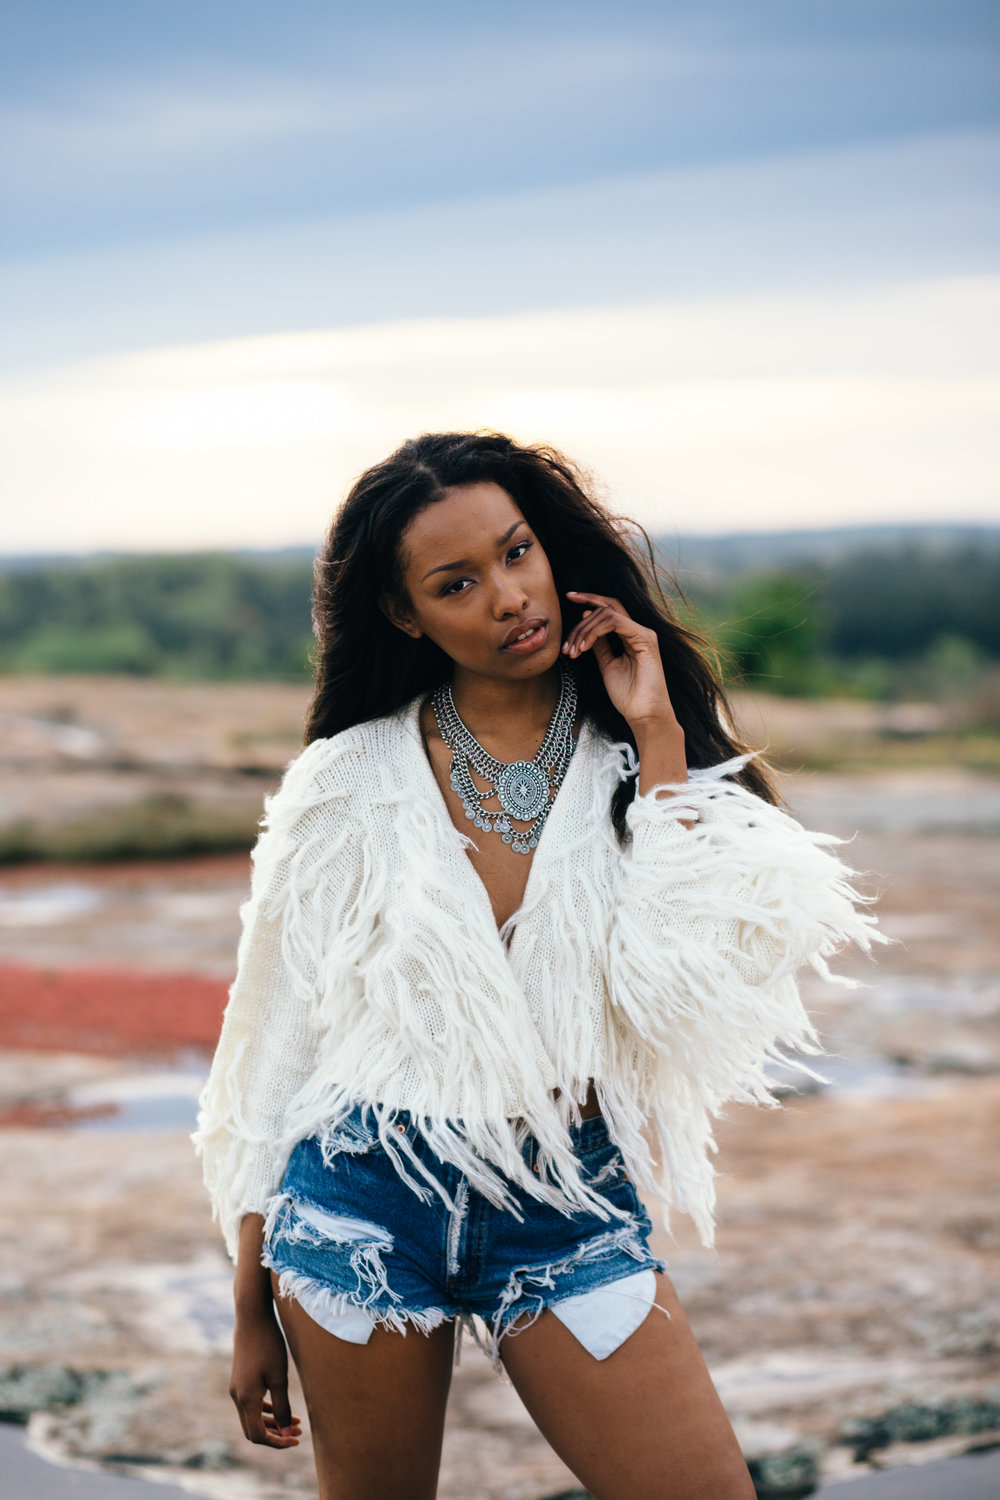 Wild Child Session: Arabia Mountain with Margaret Snider Makeup Artistry and Alex McClelland Photography